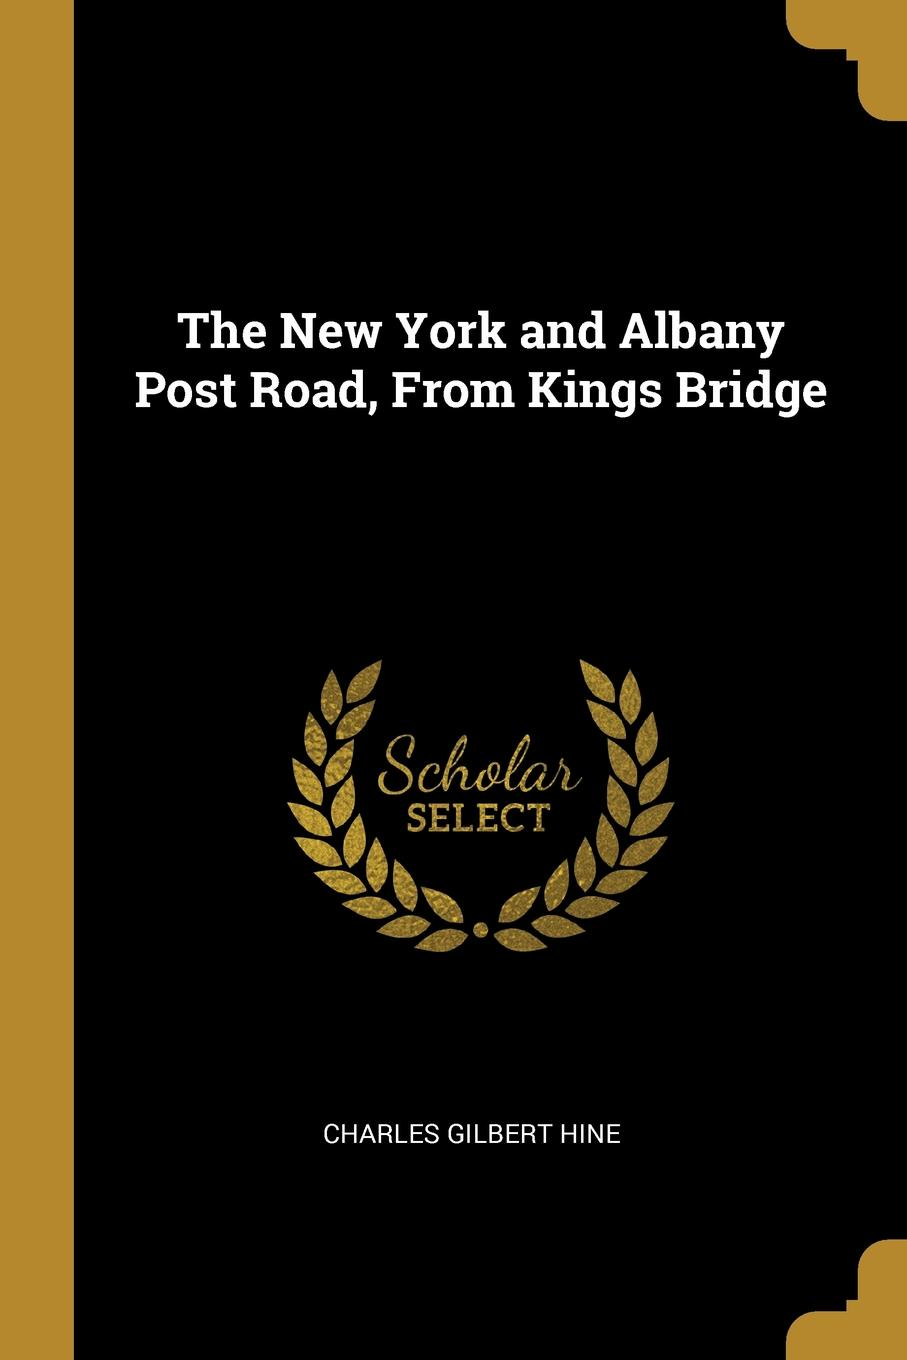 Charles Gilbert Hine The New York and Albany Post Road, From Kings Bridge c g hine the new york and albany post road from kings bridge to the ferry at crawlier over against albany being an account of a jaunt on foot made at sundry may and november nineteen hundred and five